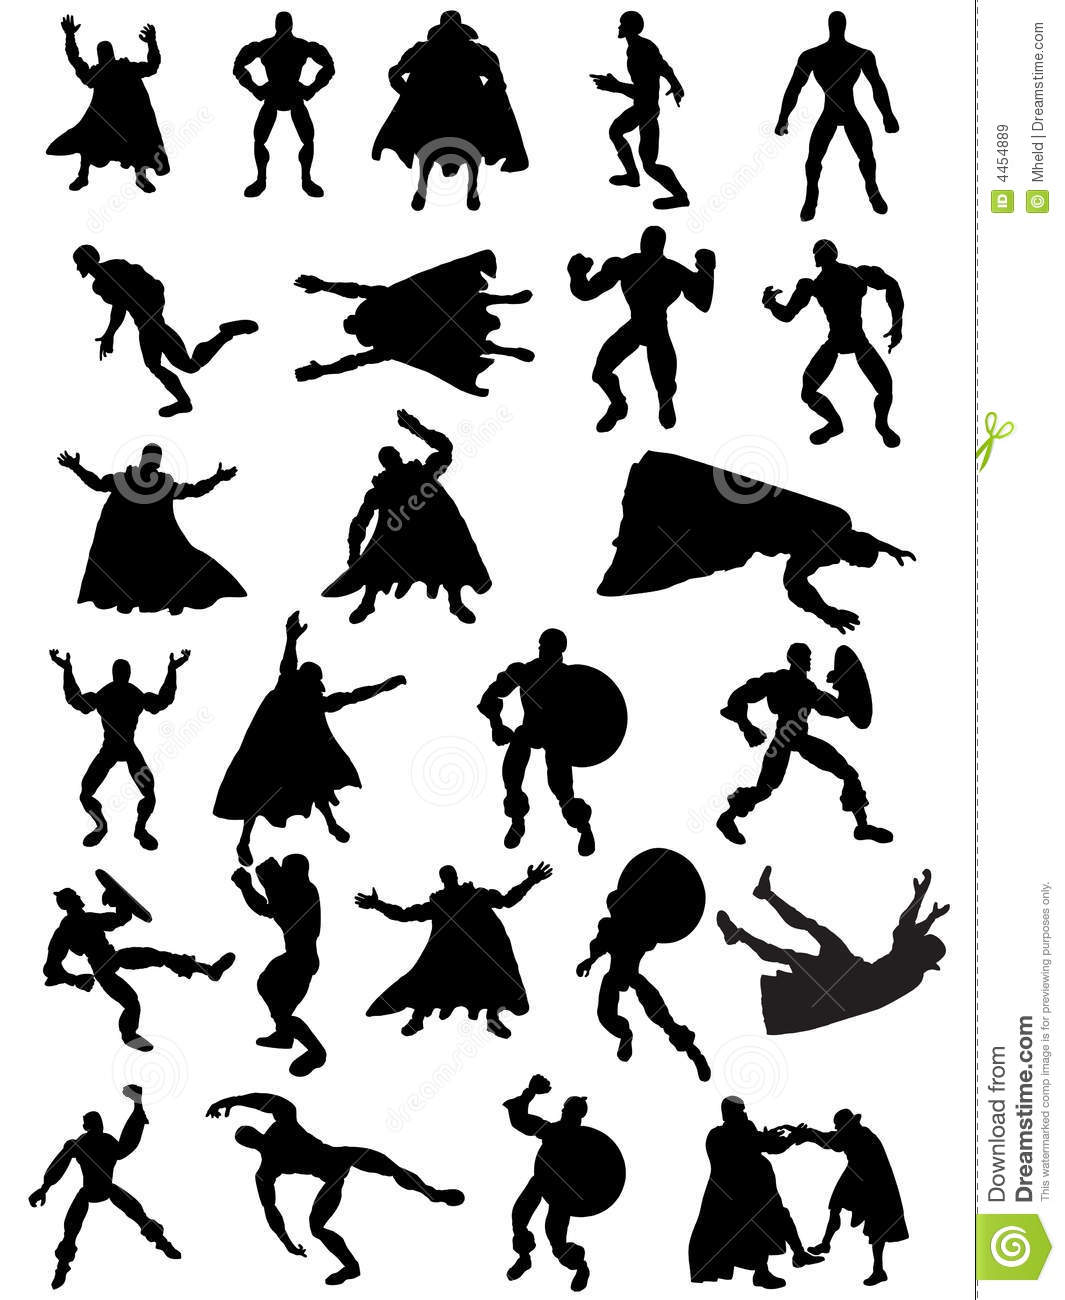 Superhero Silhouettes Royalty Free Stock Images - Image: 4454889